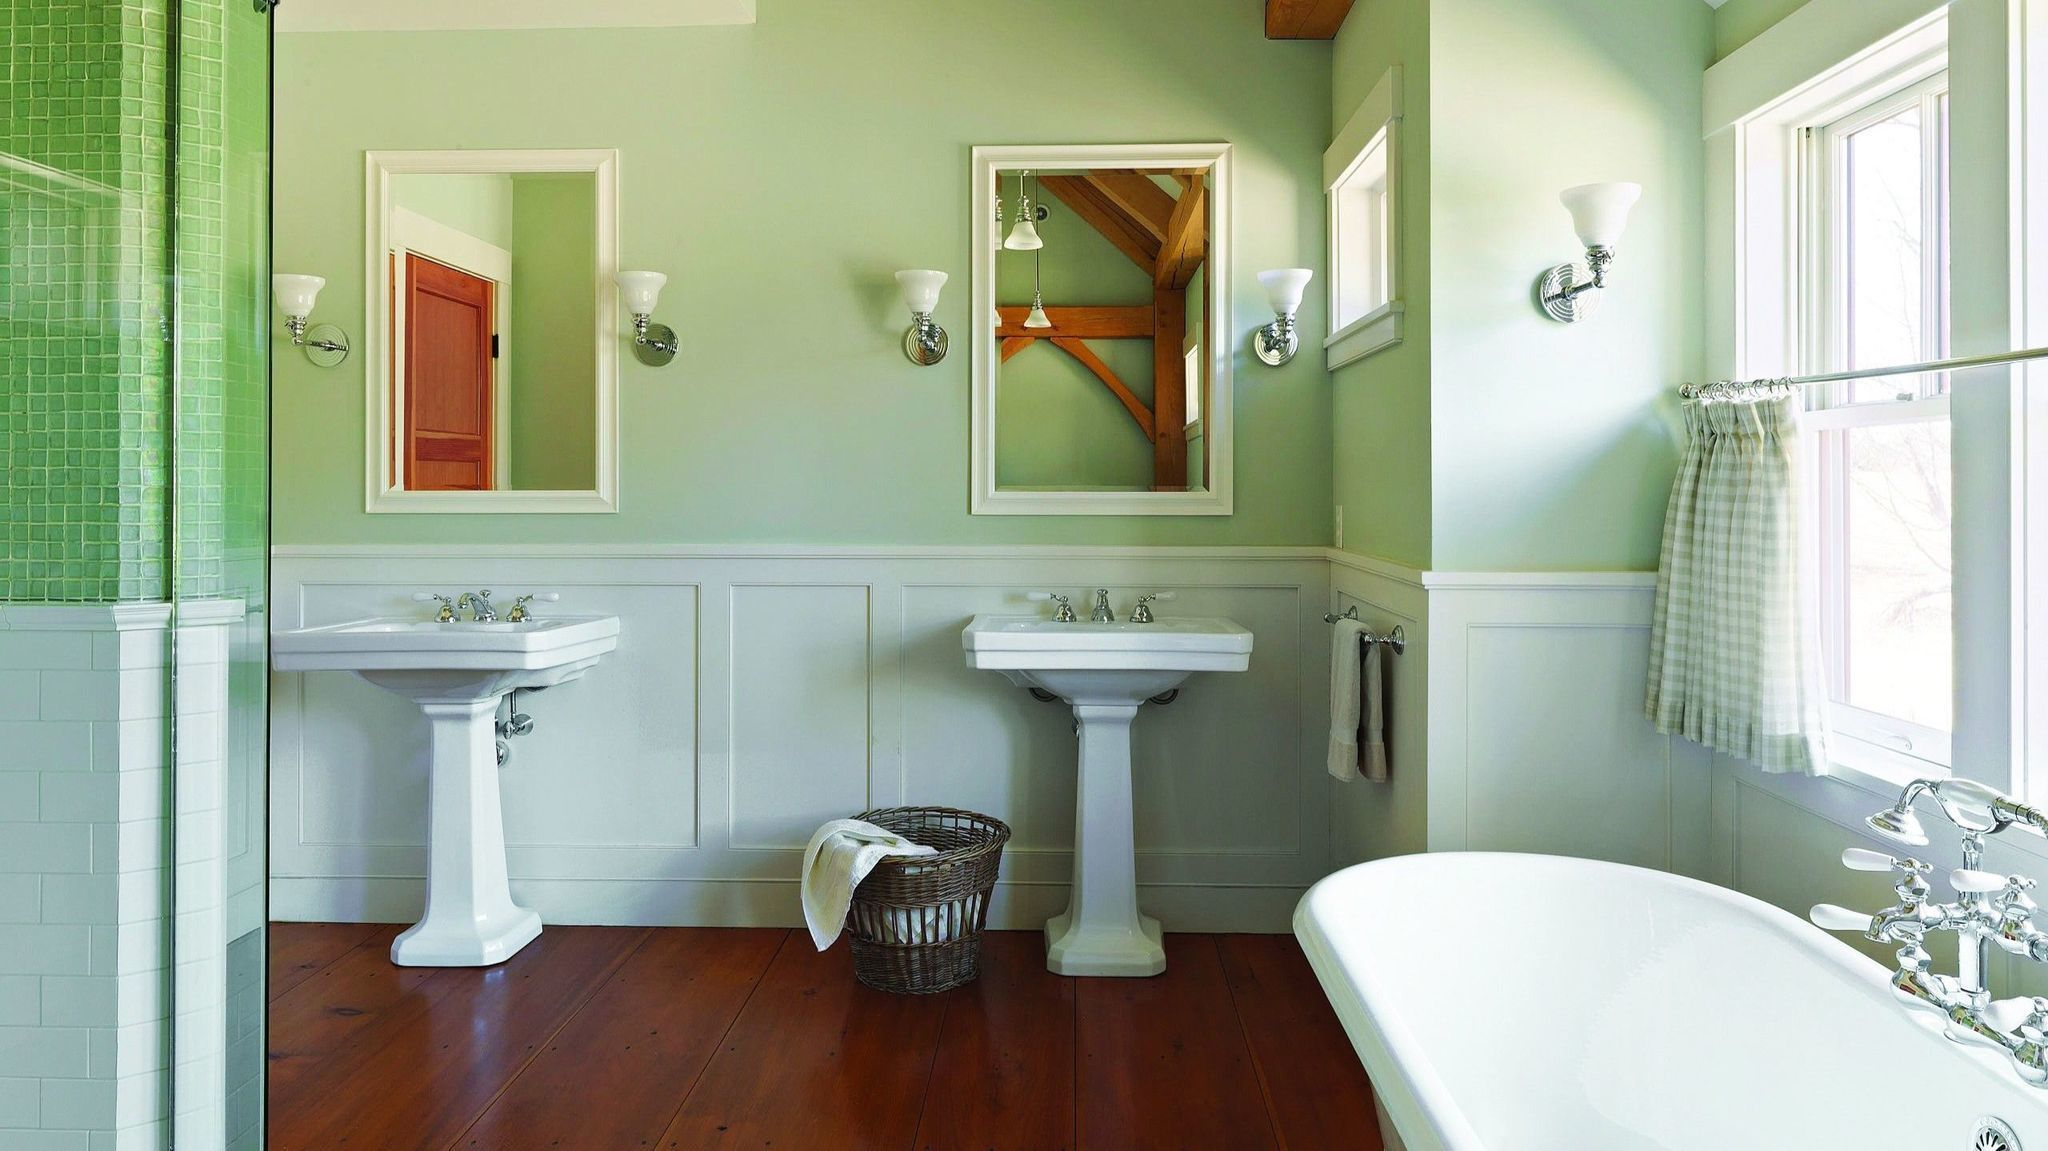 Ideas for bathroom mini makeovers - The San Diego Union-Tribune